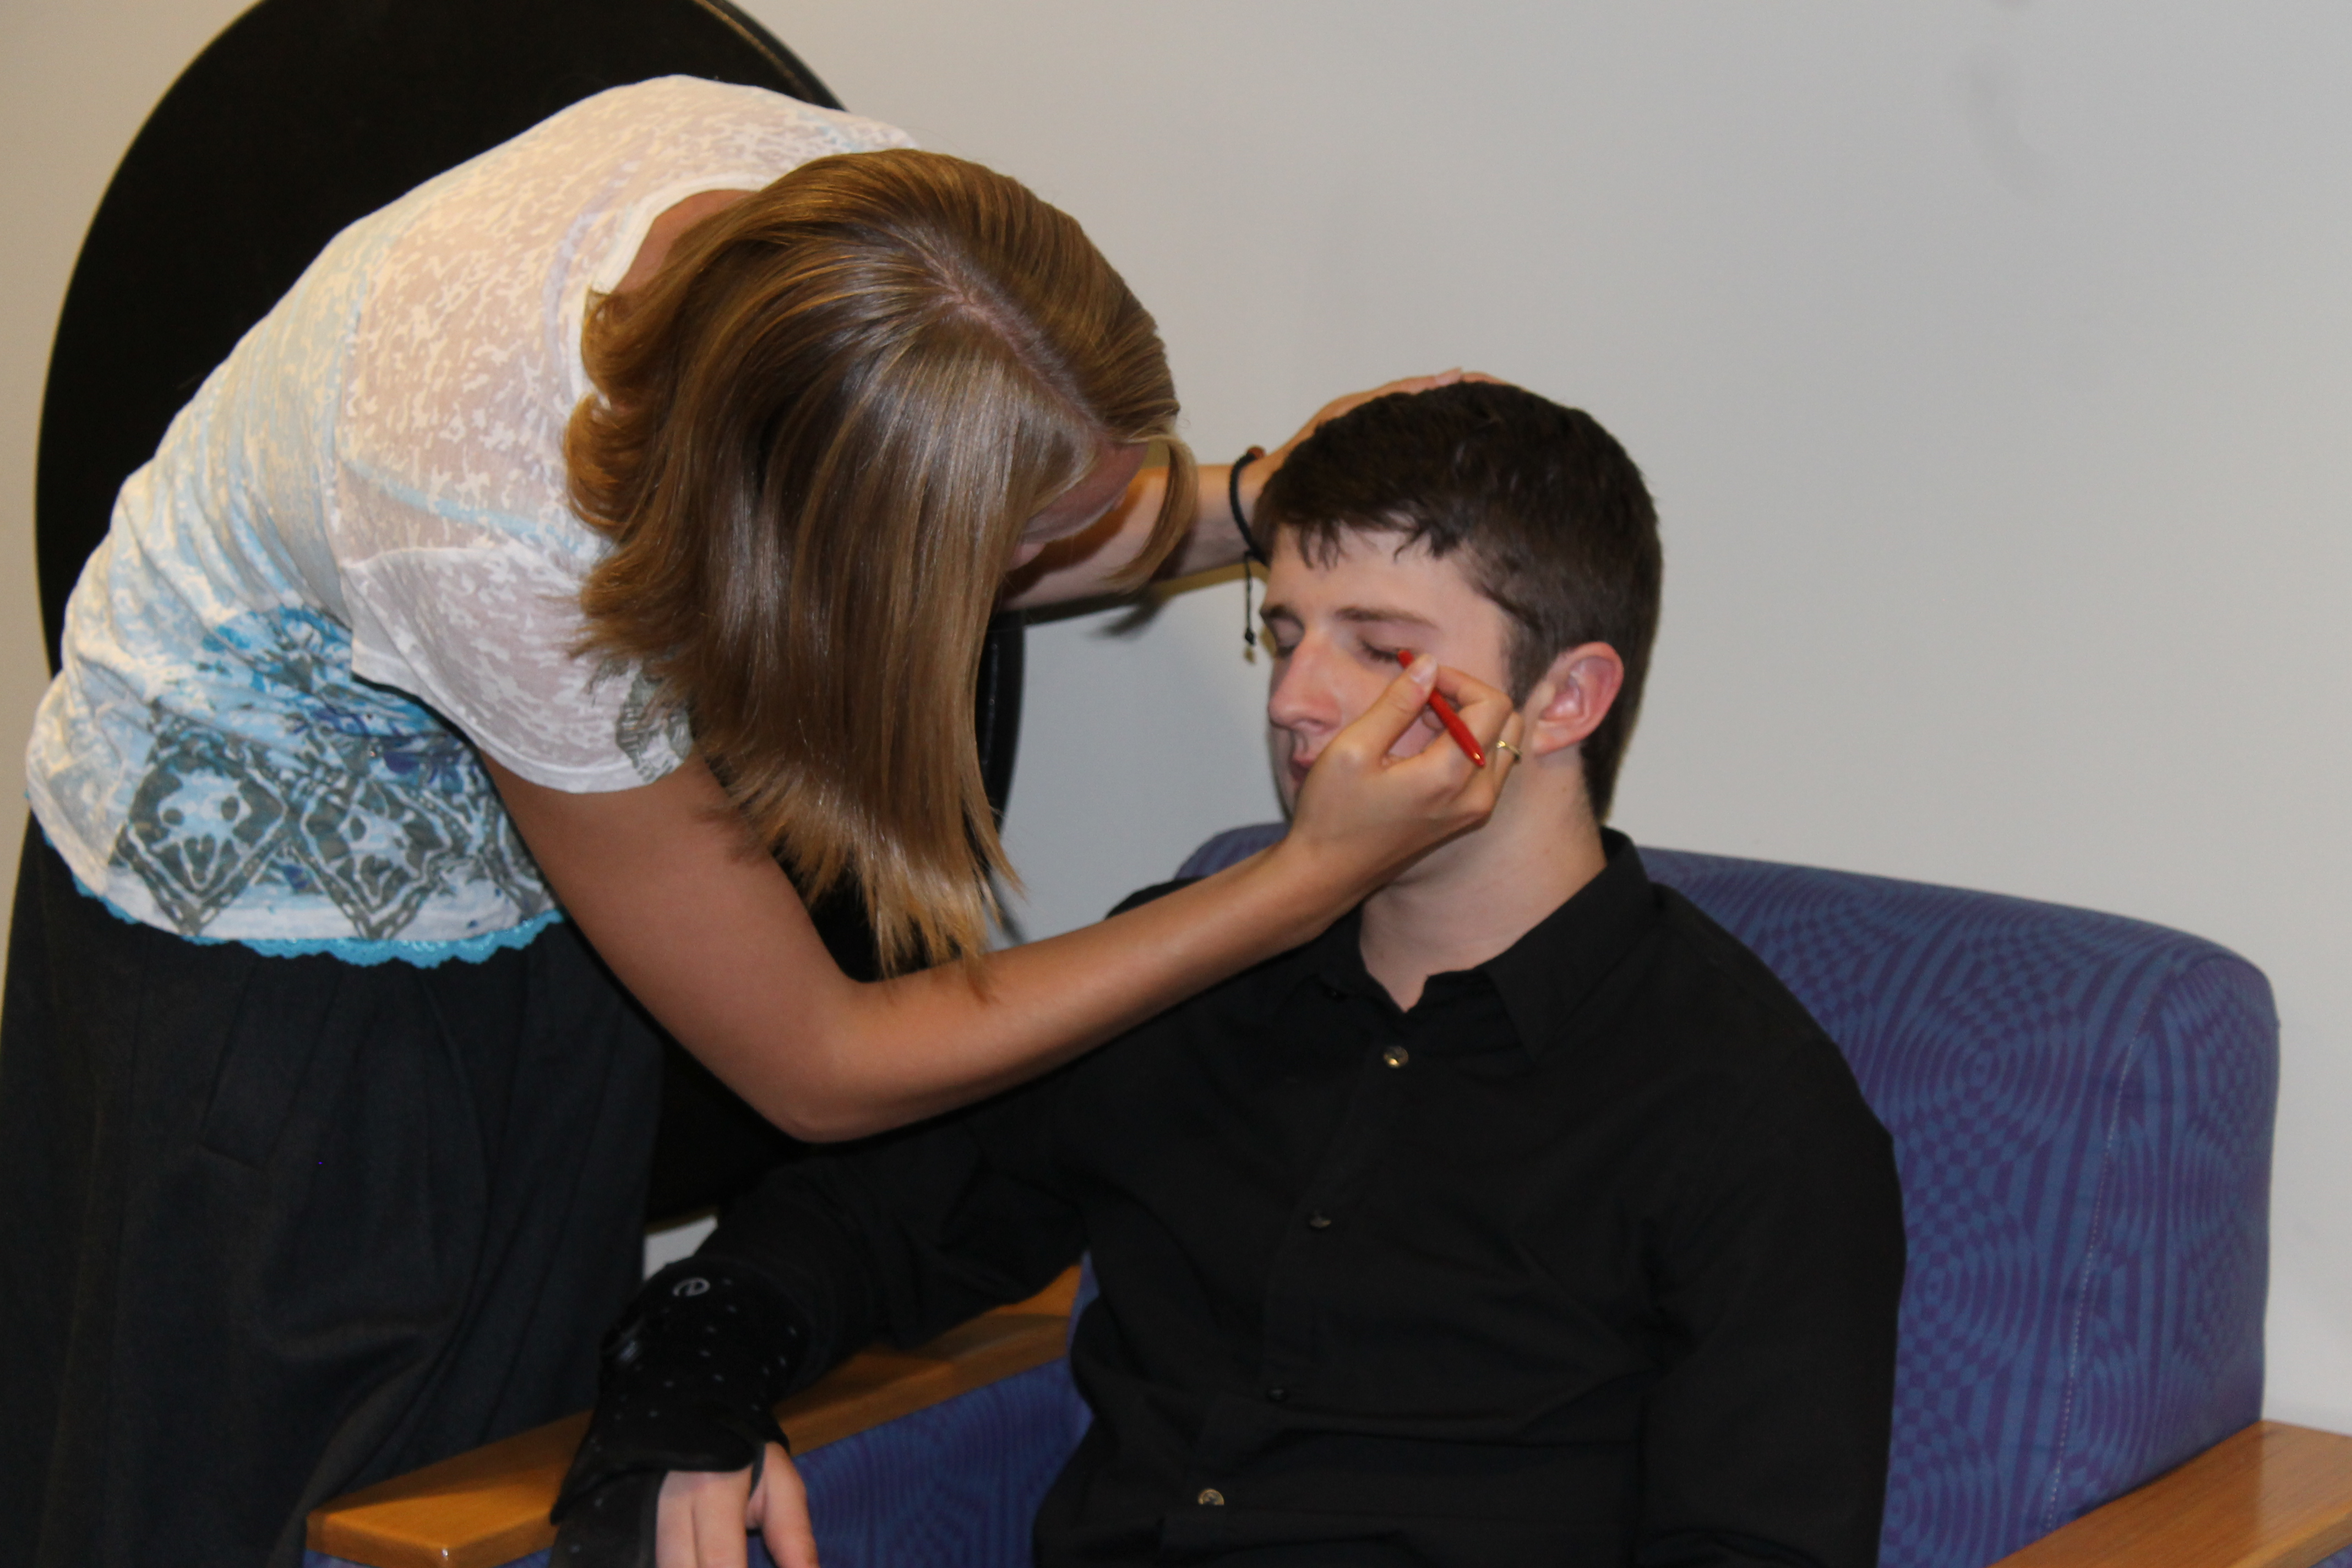 Kayla getting Matt Simon (Timothy) prepared to go on stage for dress rehearsal.